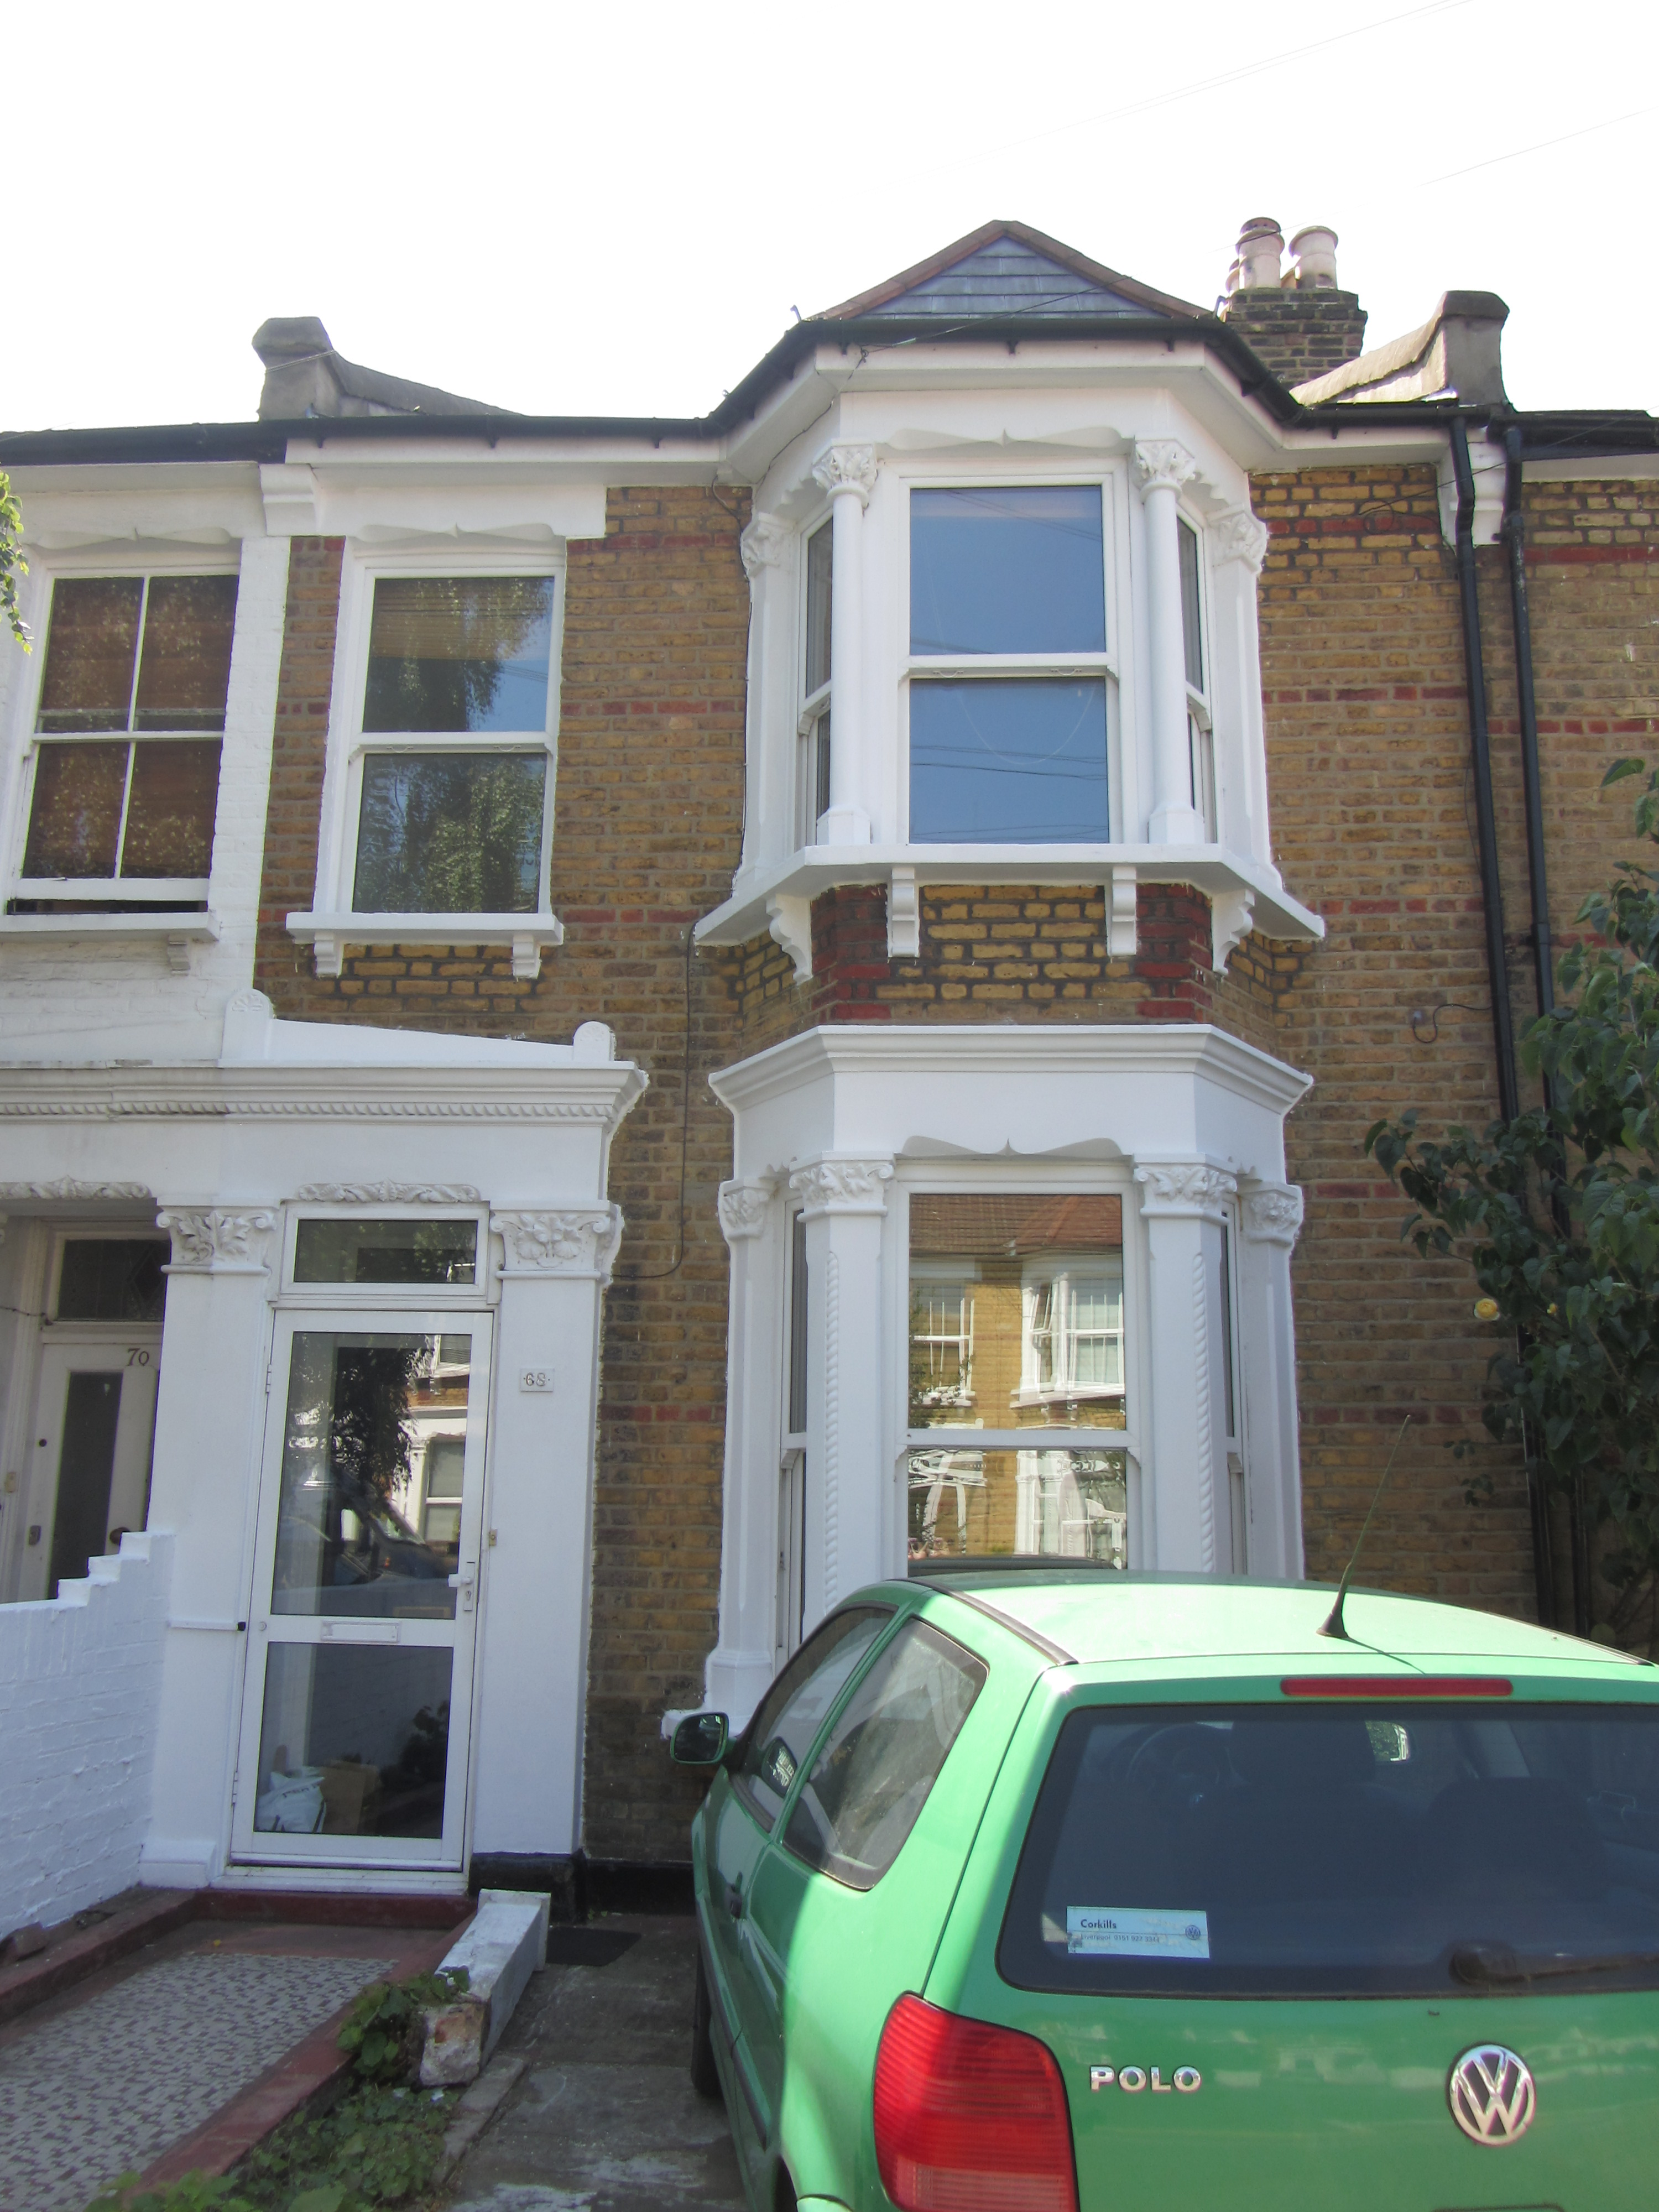 4 Bed House - Terraced to Rent - Vant Road, London, SW17 8TJ